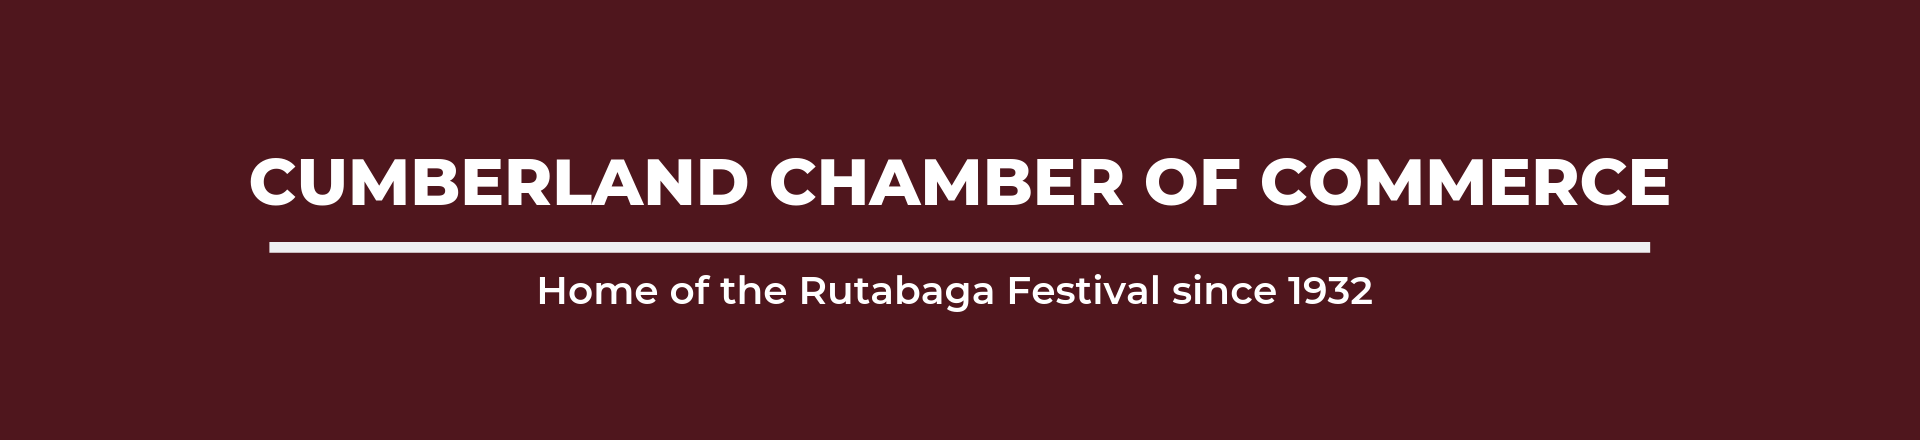 Cumberland Chamber of Commerce